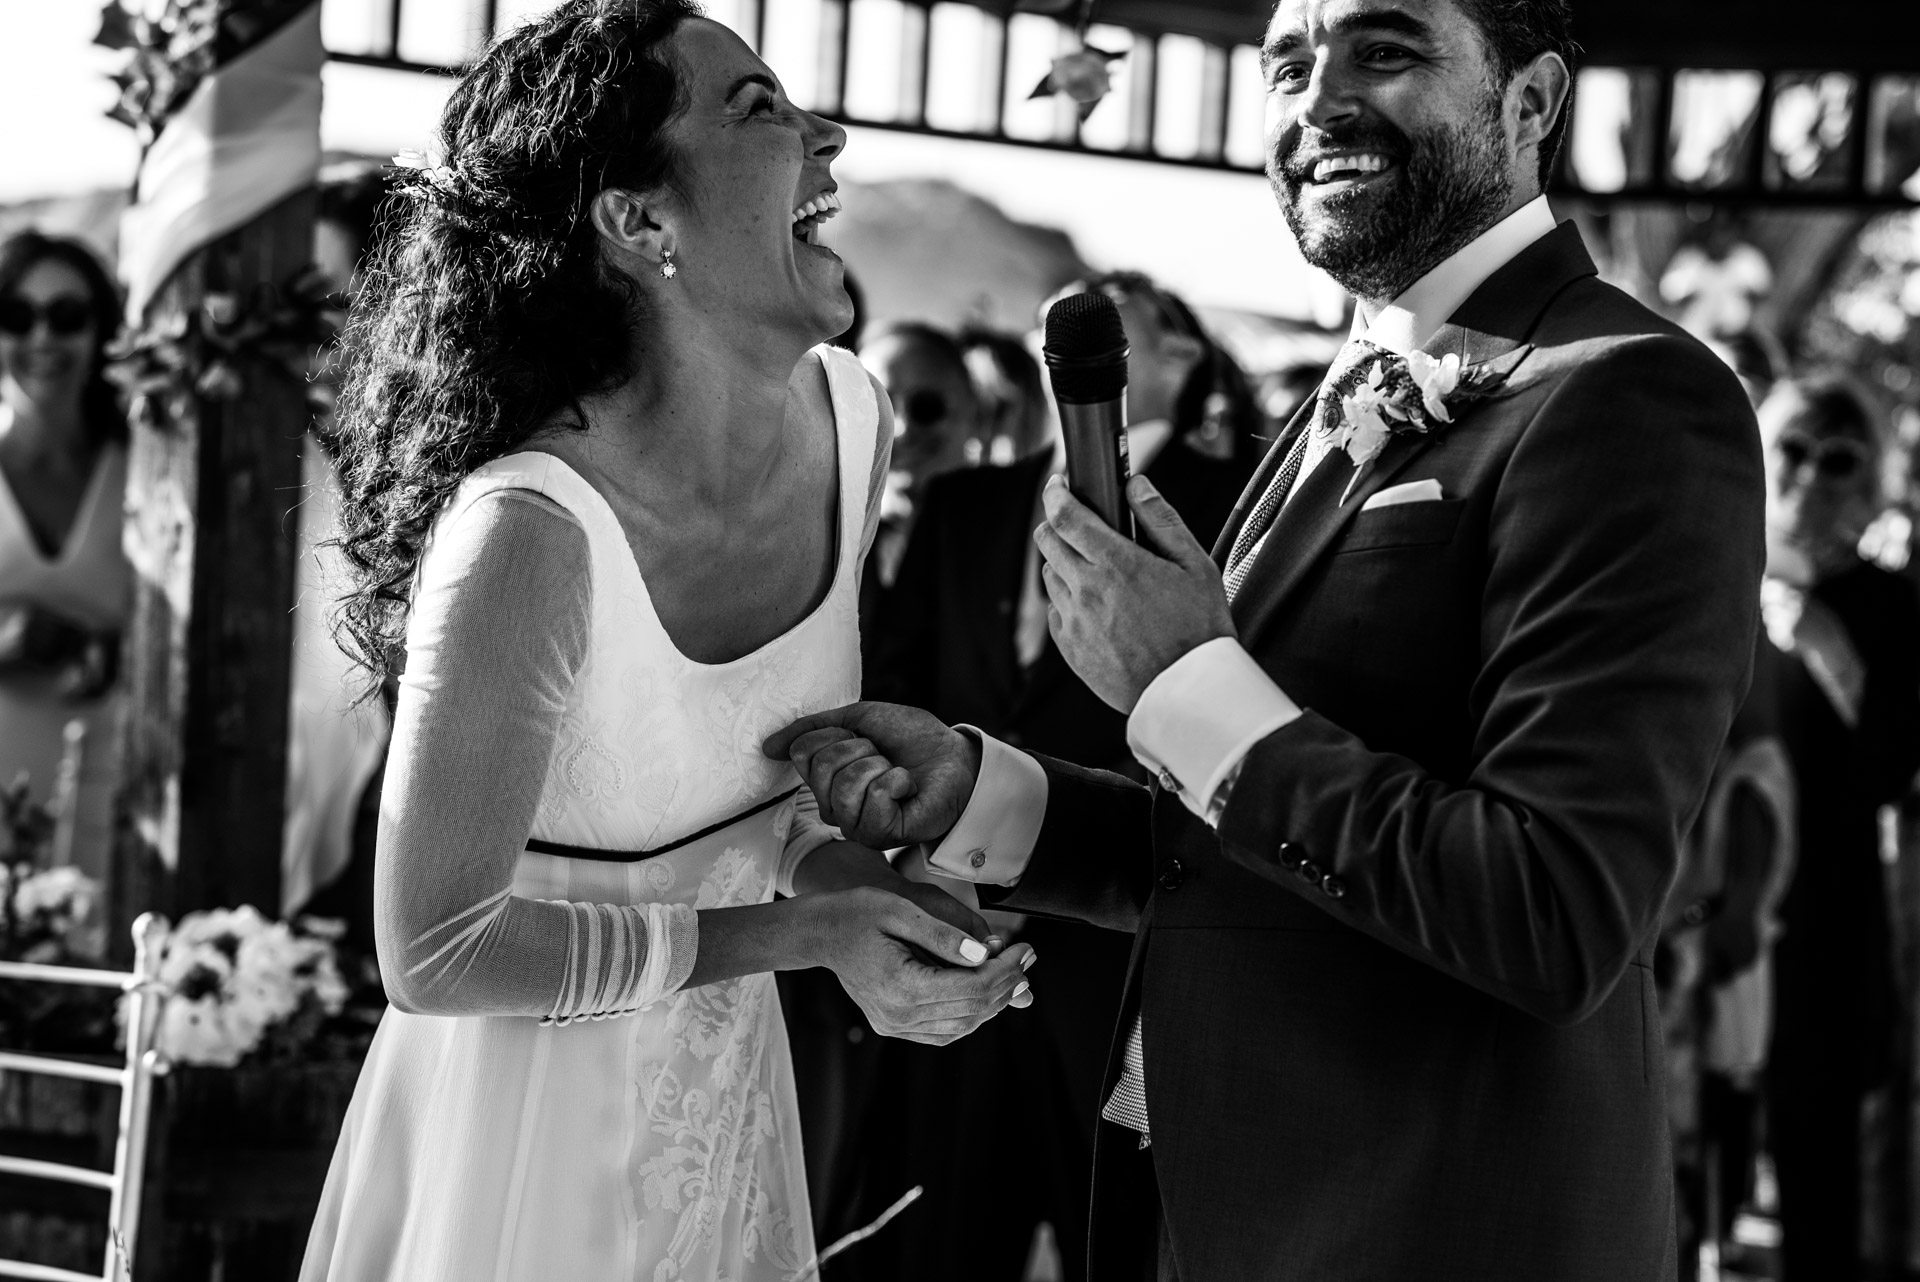 Fotos de boda divertidas y originales